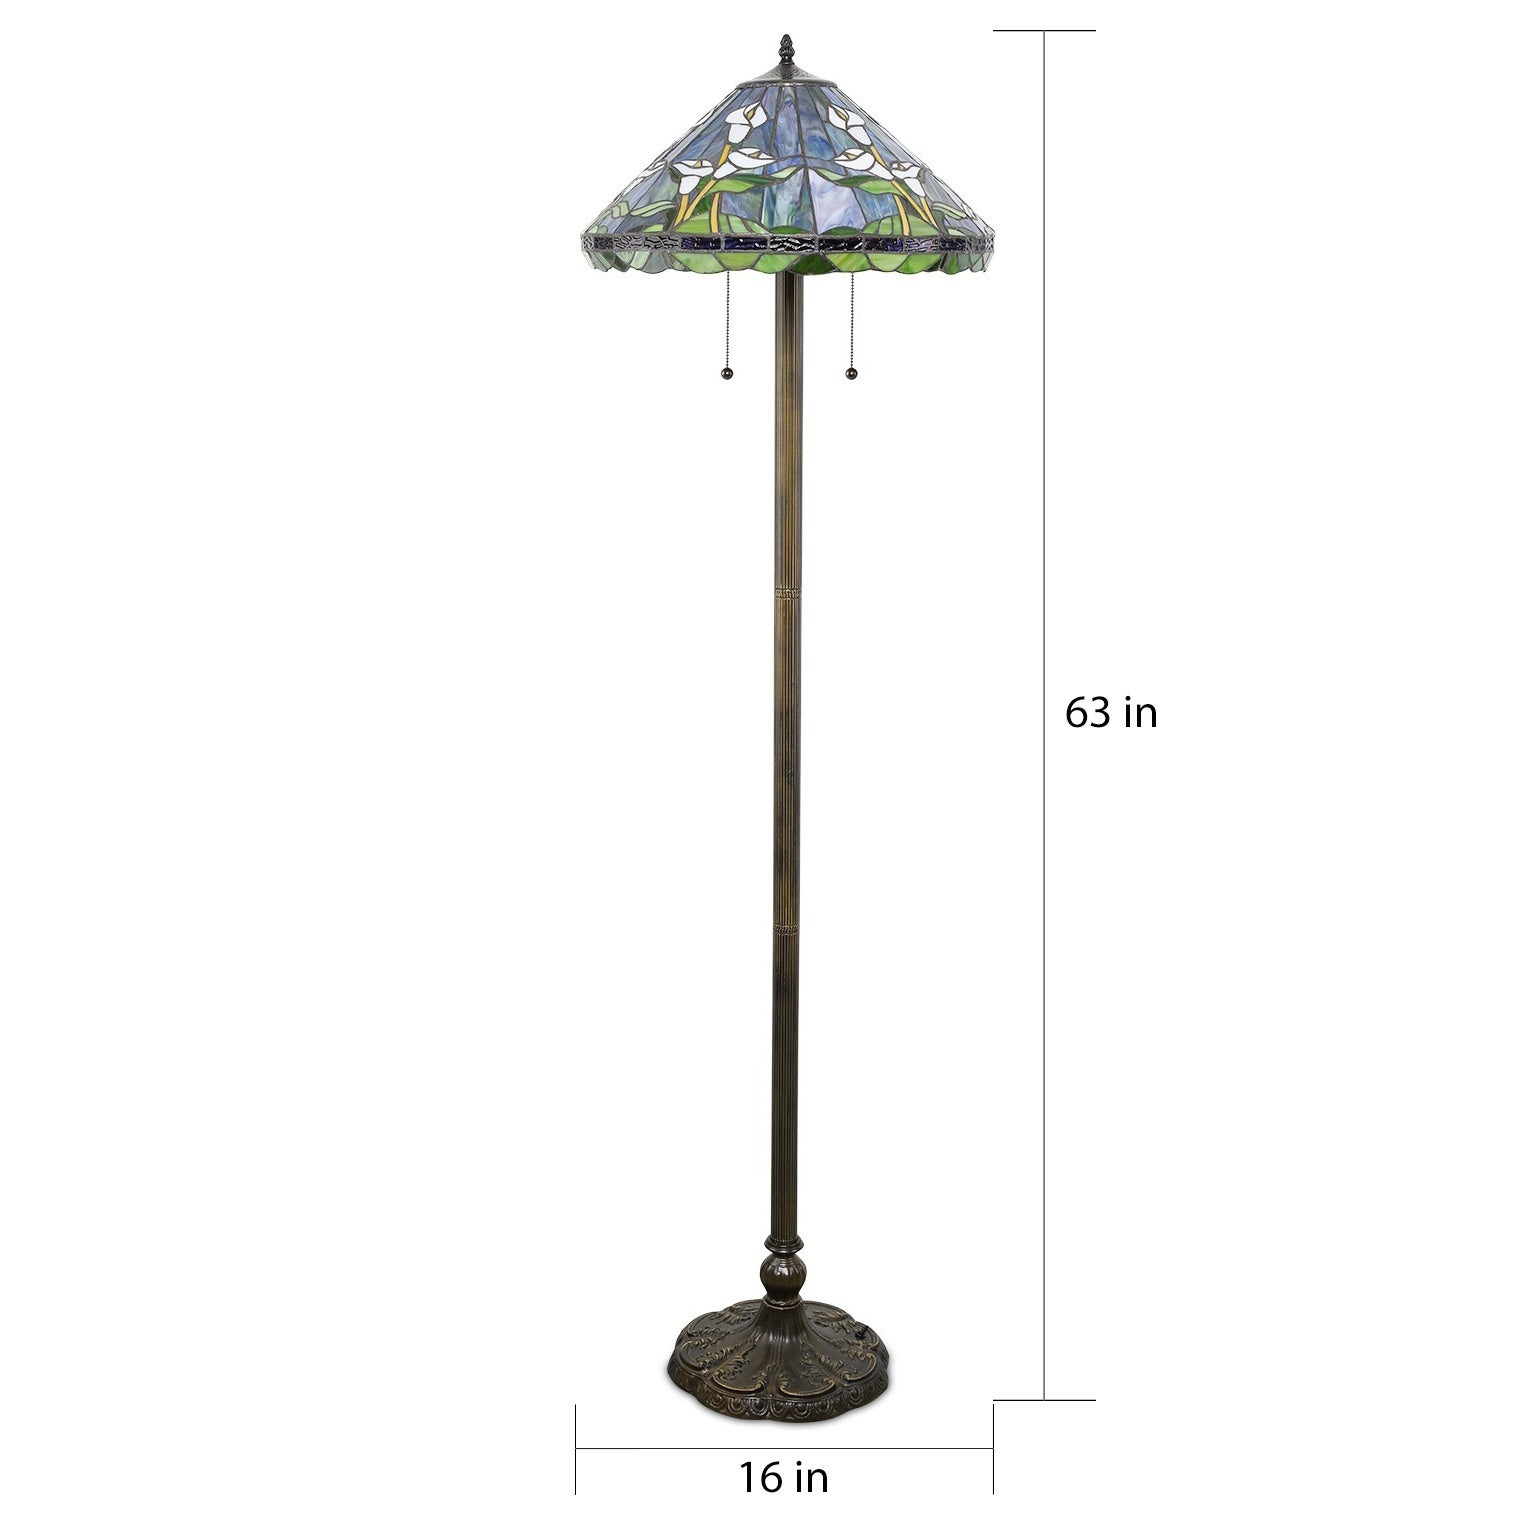 beautiful fixture dragonfly shade base lamp light library stained replacement reading tiffany floor lamps style parts stand for lighting bieye dale quoizel clearance